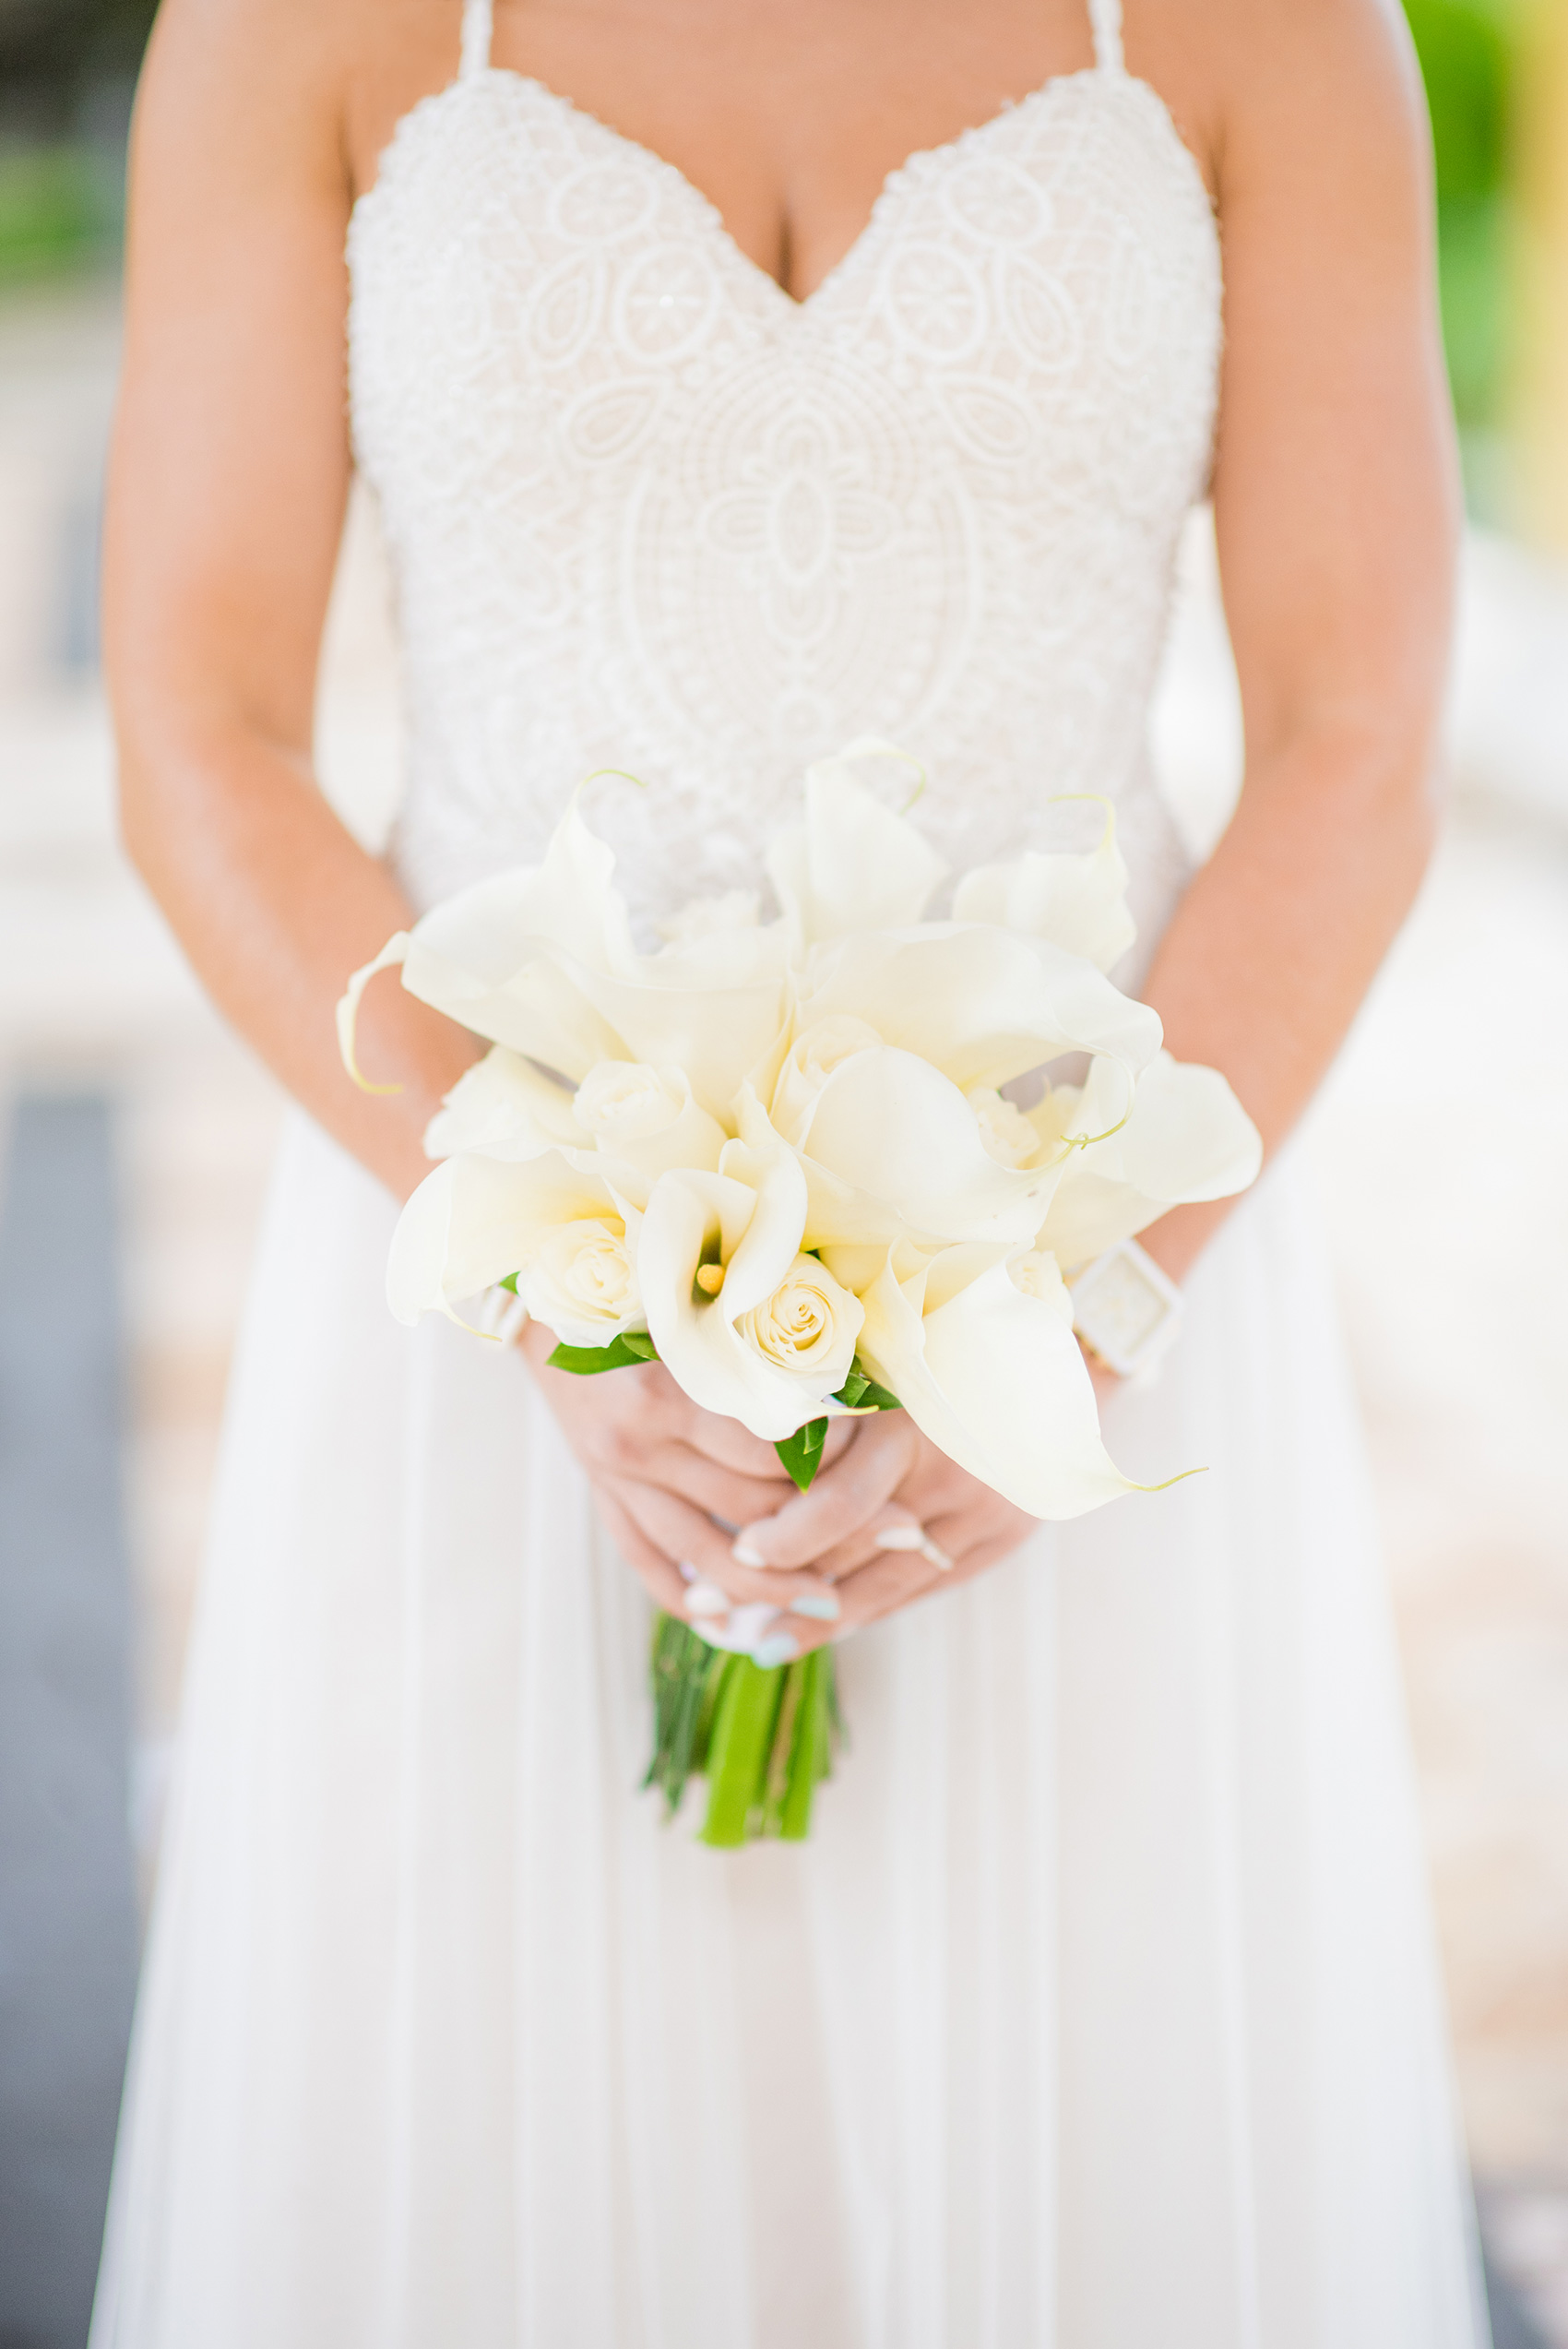 Mikkel Paige Photography photos from a wedding at Grand Paraiso, Mexico, Playa del Carmen Iberostar resort. Picture of the bride holding her calla lily and rose white bouquet.